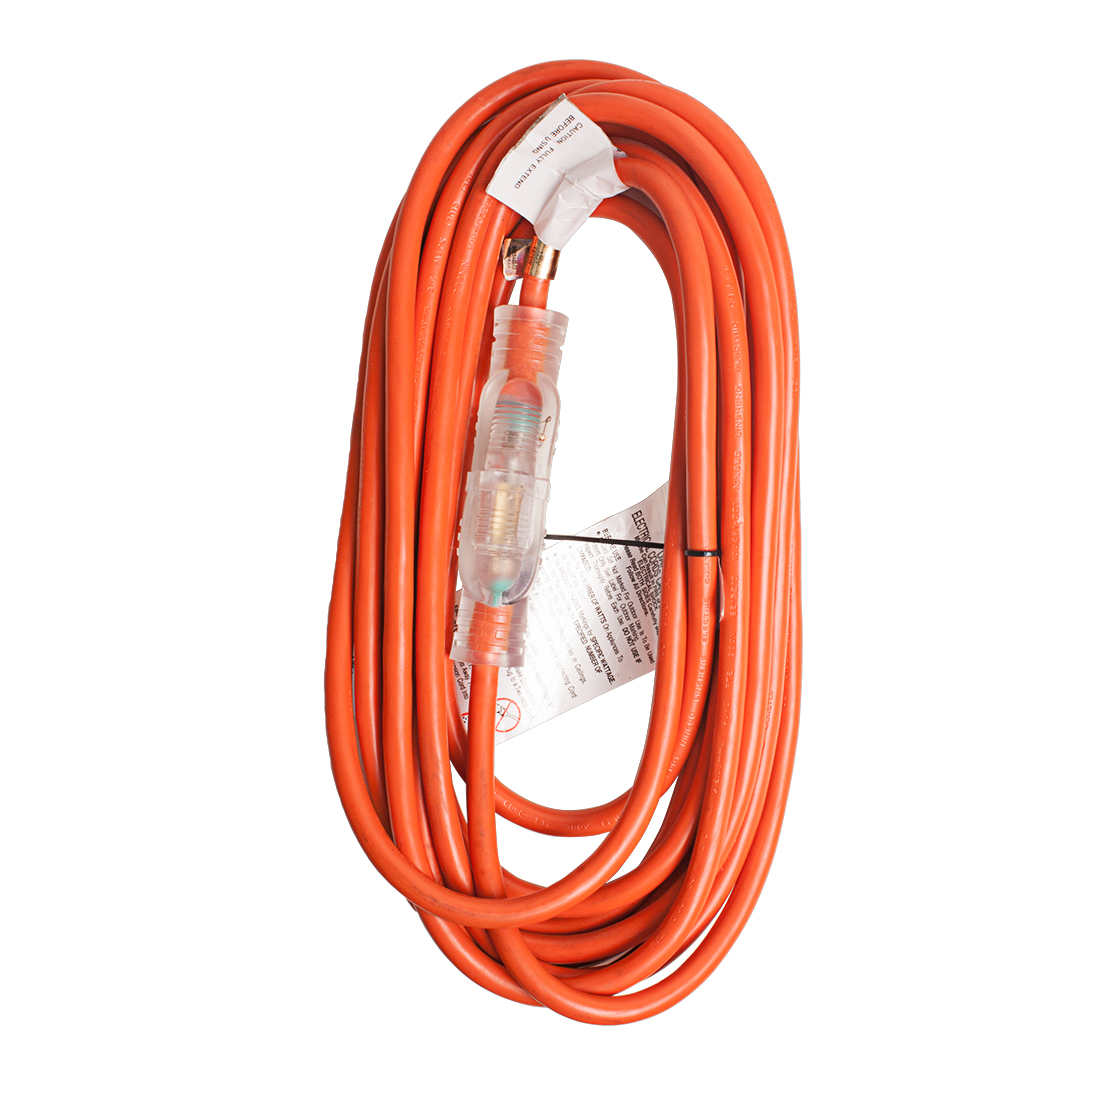 Outdoor Heavy-Duty Lighted US Power Extension Cord Cable 15A 14AWG SJTW 25Ft Orange